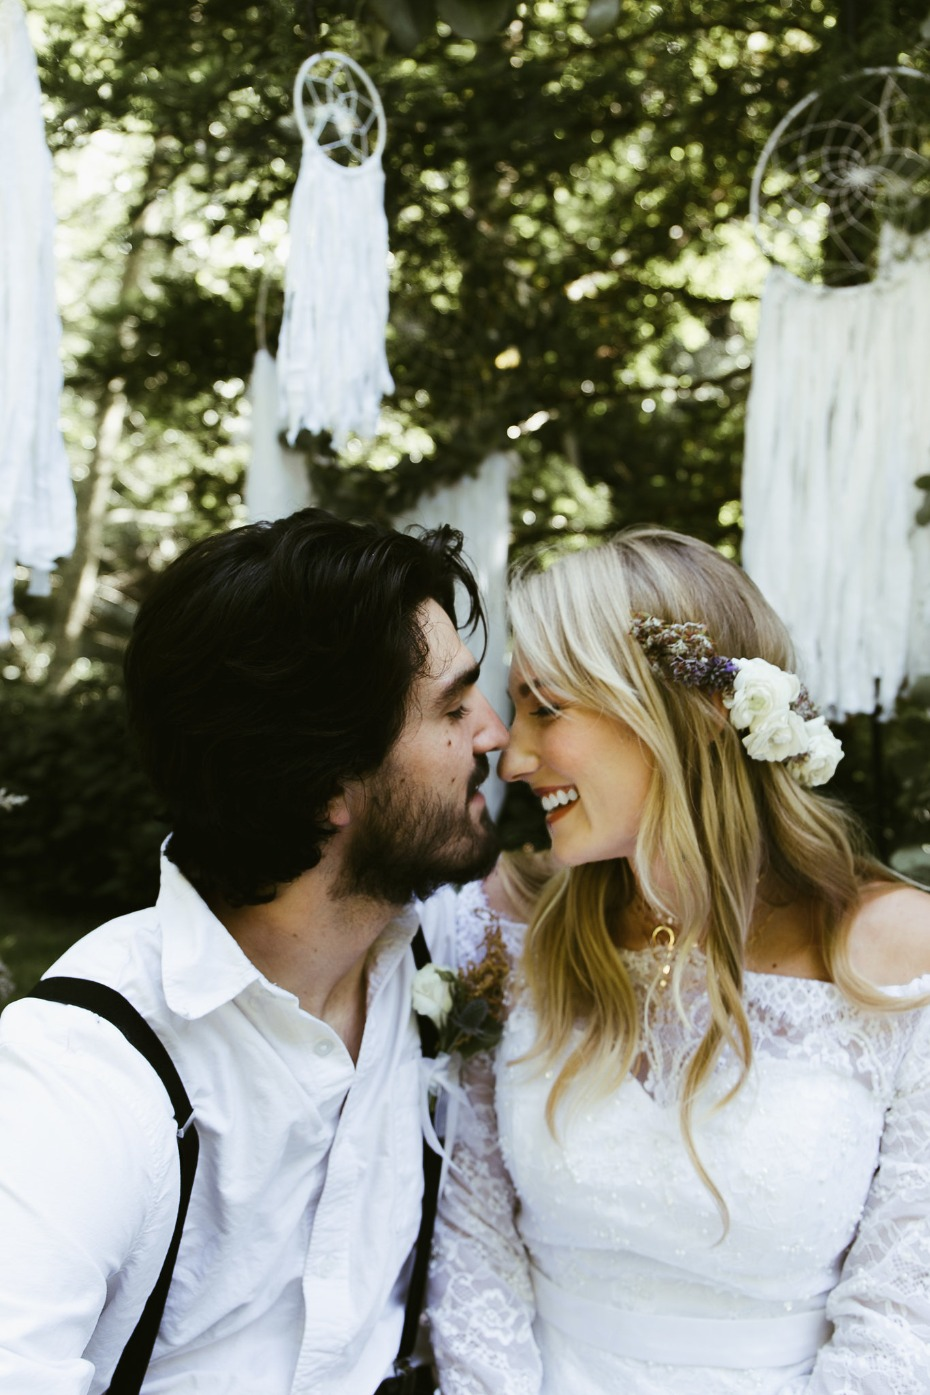 Romantic, vintage boho wedding ideas